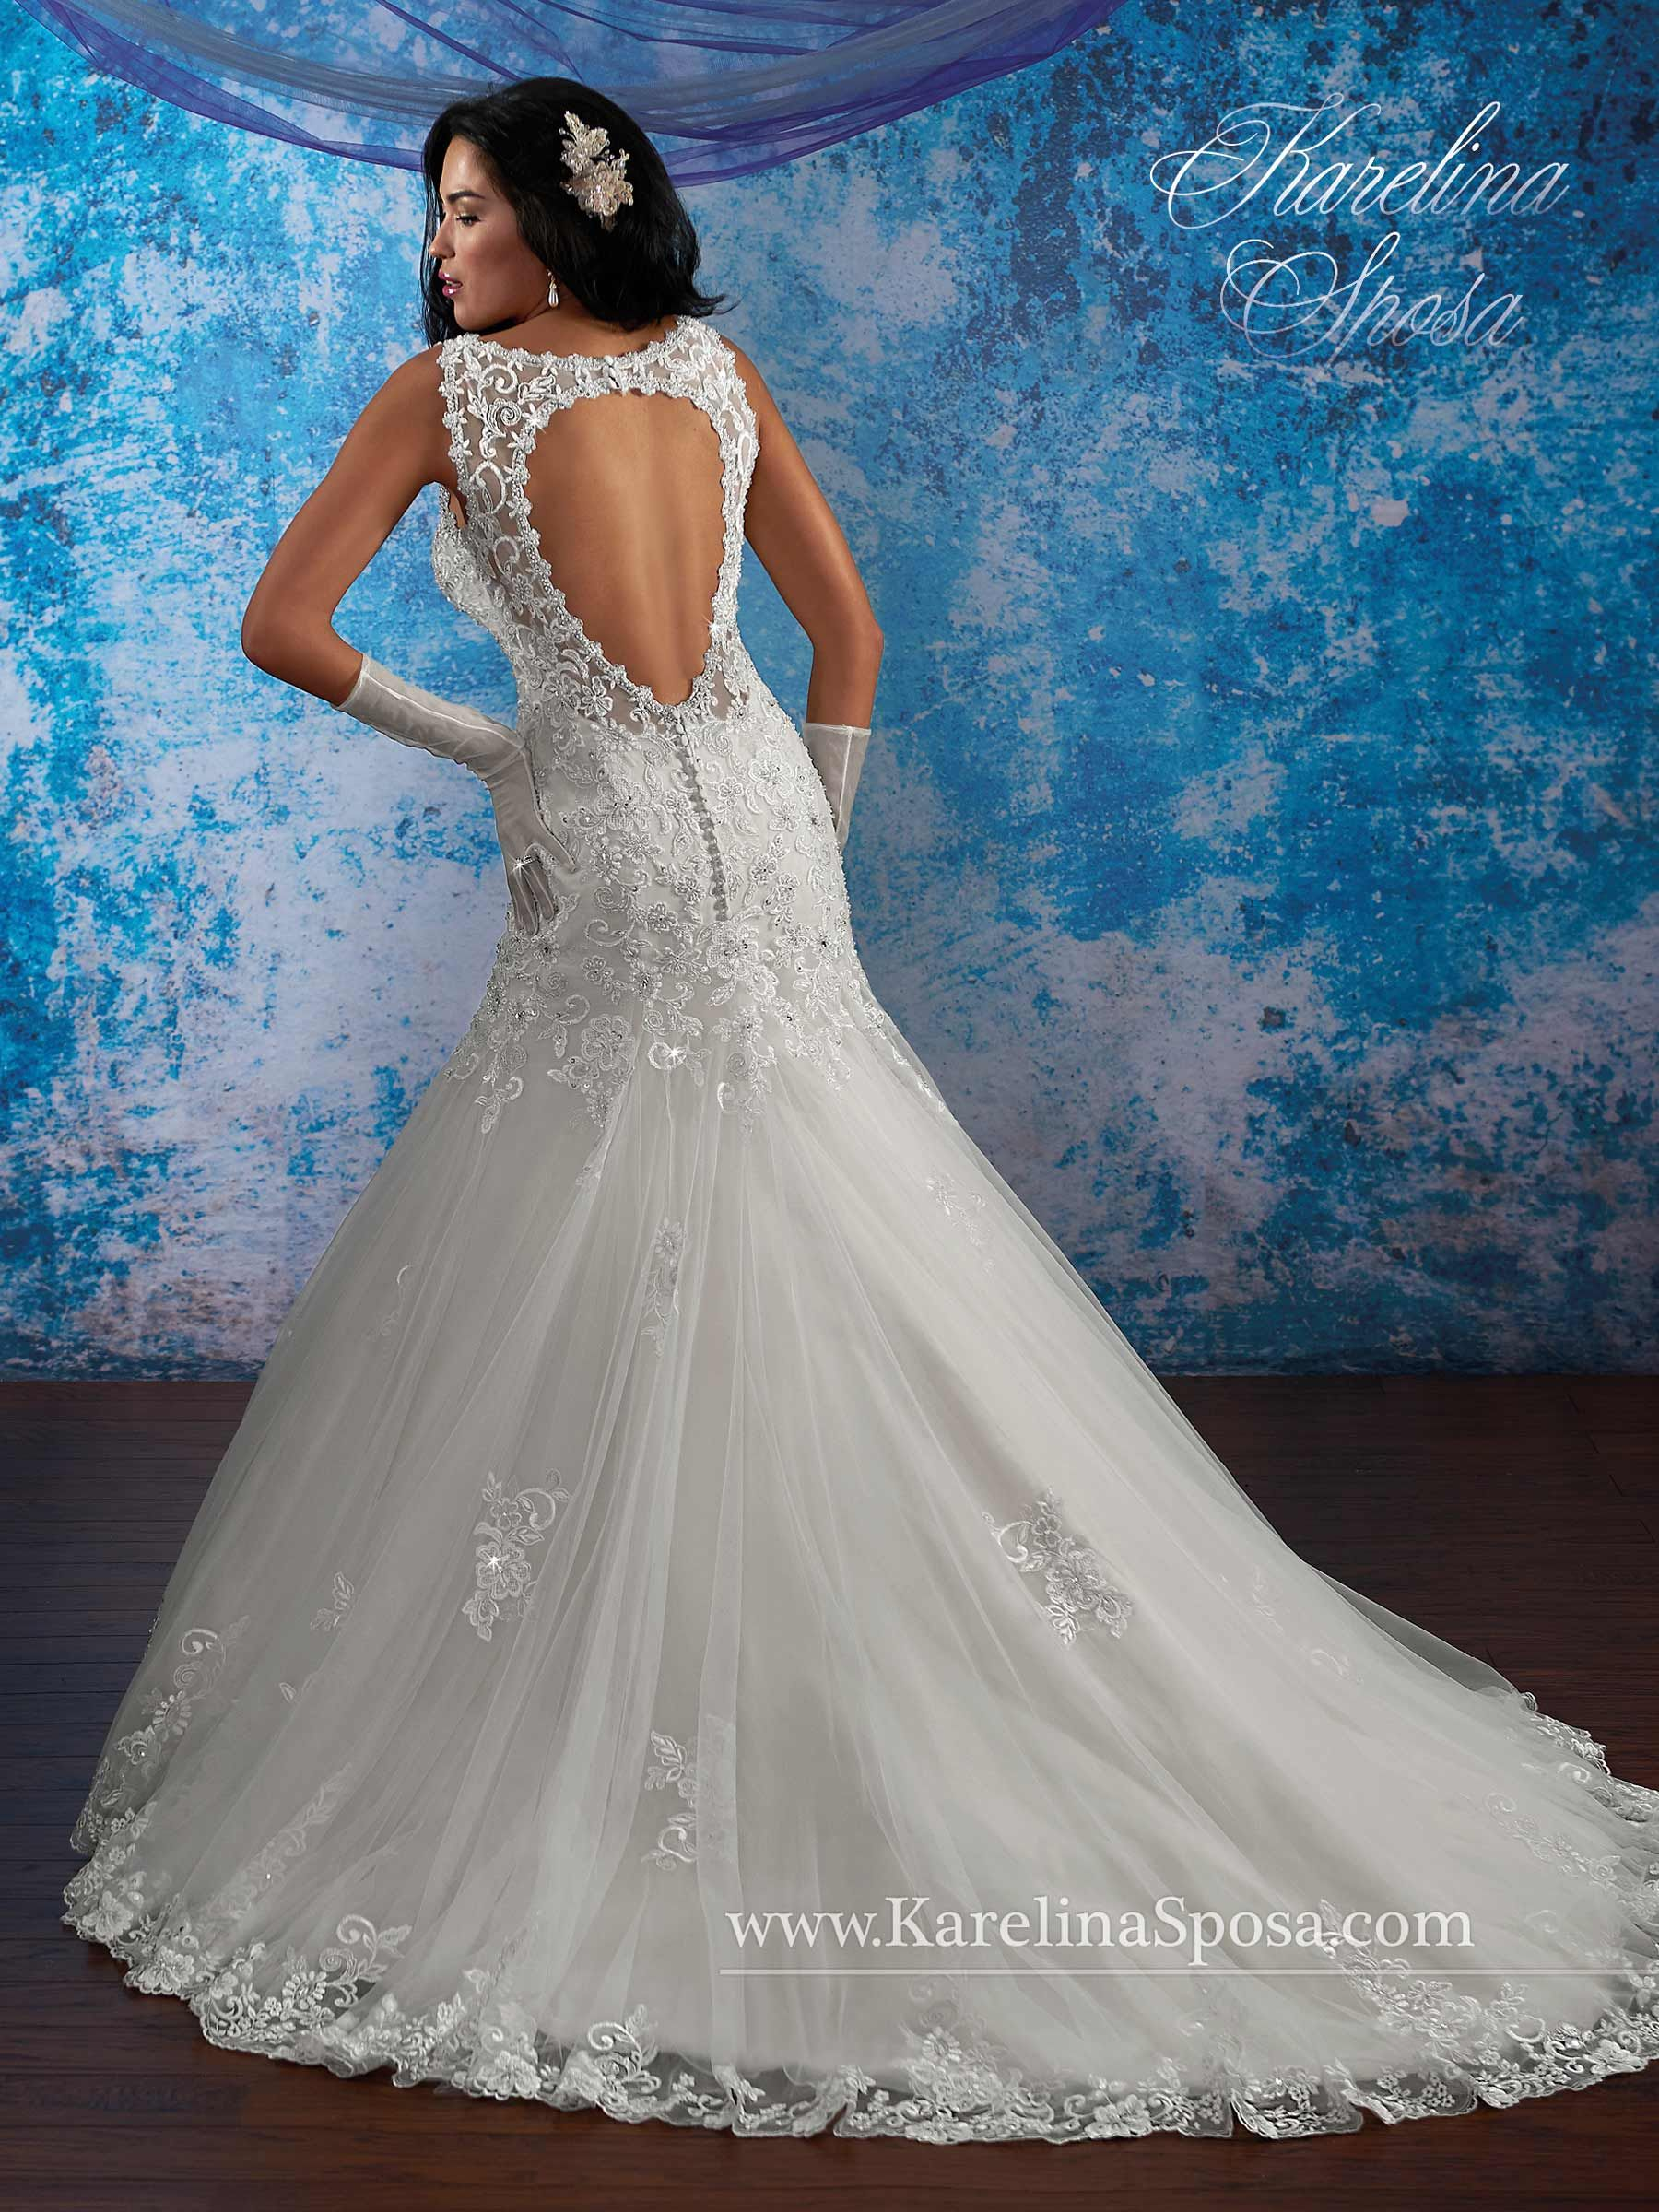 Bridal Gowns - Karelina Sposa - Style: C8082 by Mary\'s Bridal Gowns ...